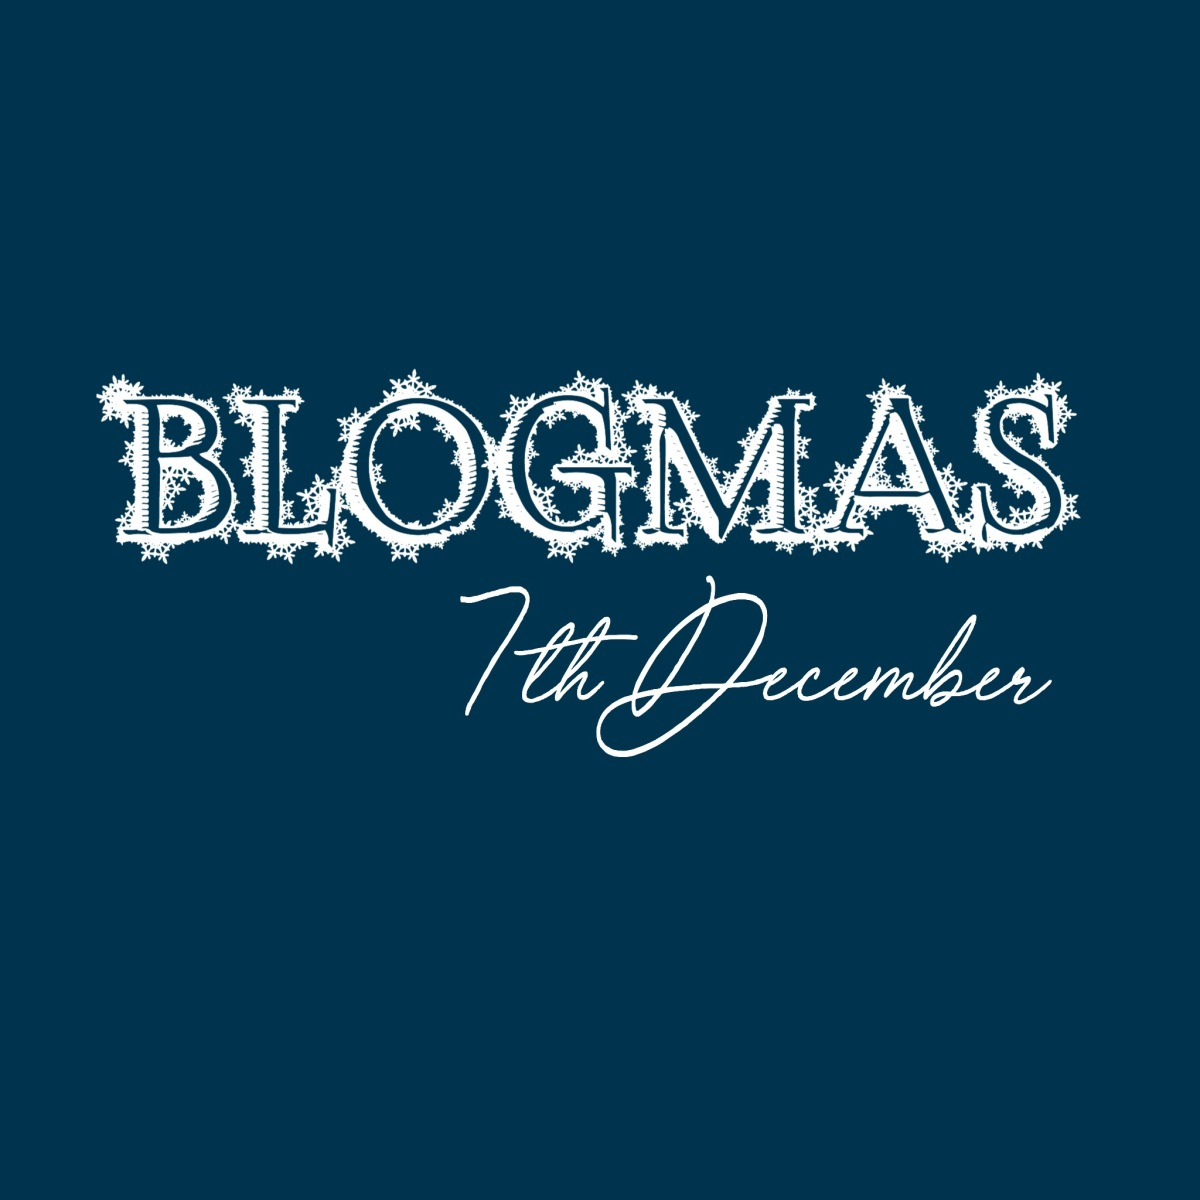 BLOGMAS – Introducing Mrs Claus…Yes It's Another Blazer